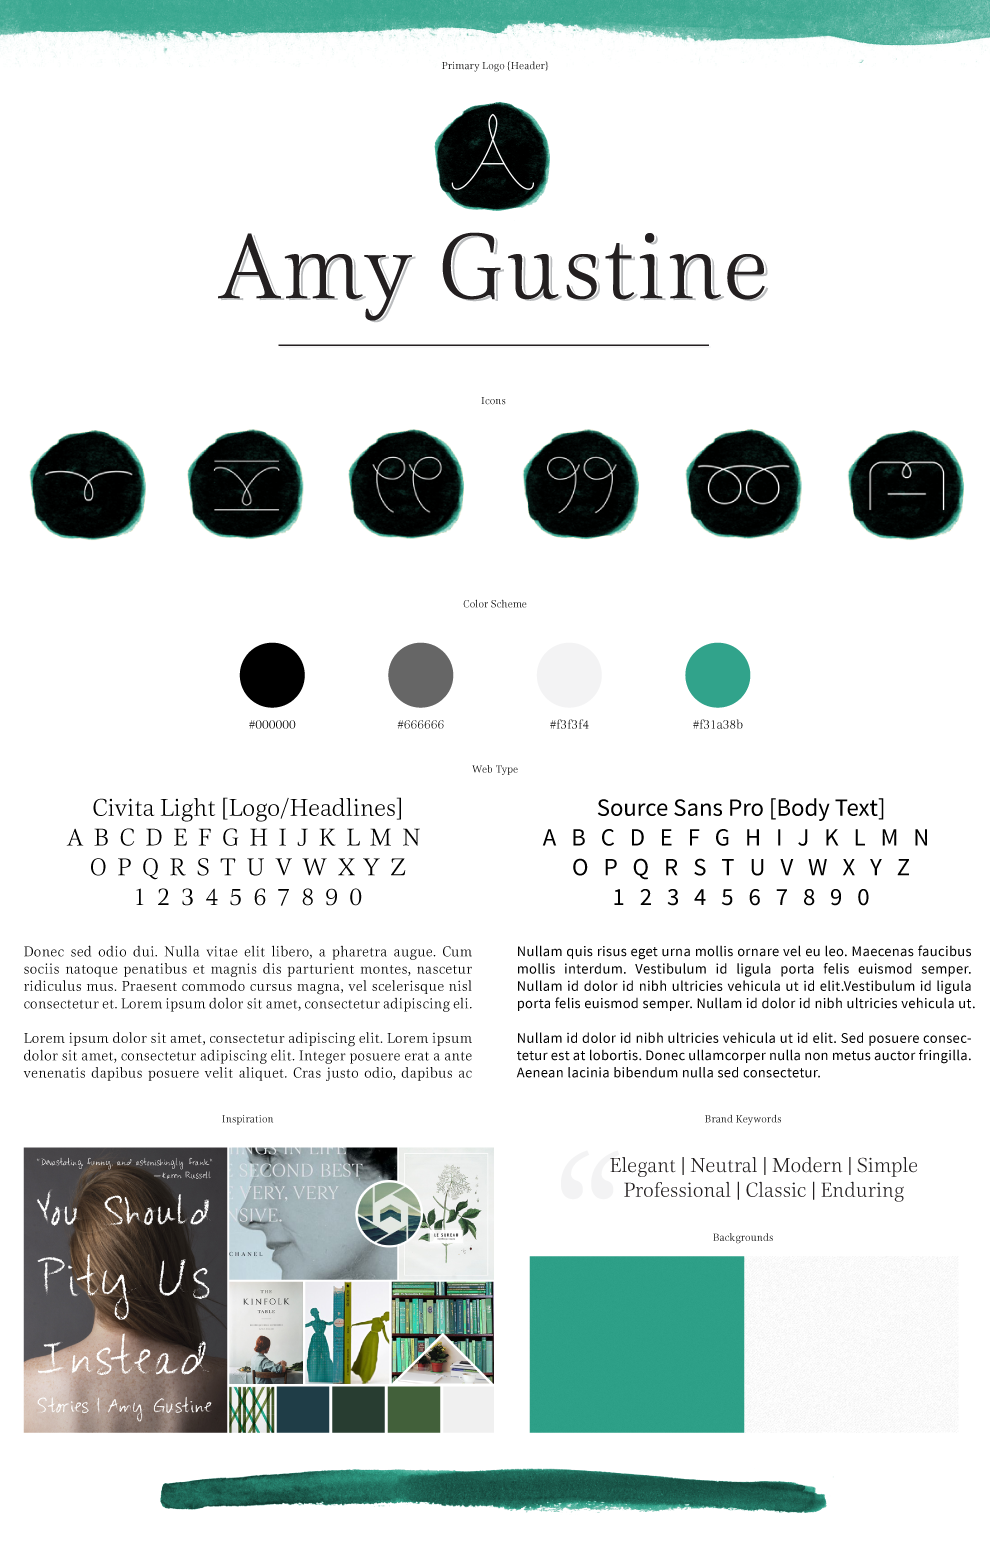 Nikkita.Co - Brand Elements for Amy Gustine